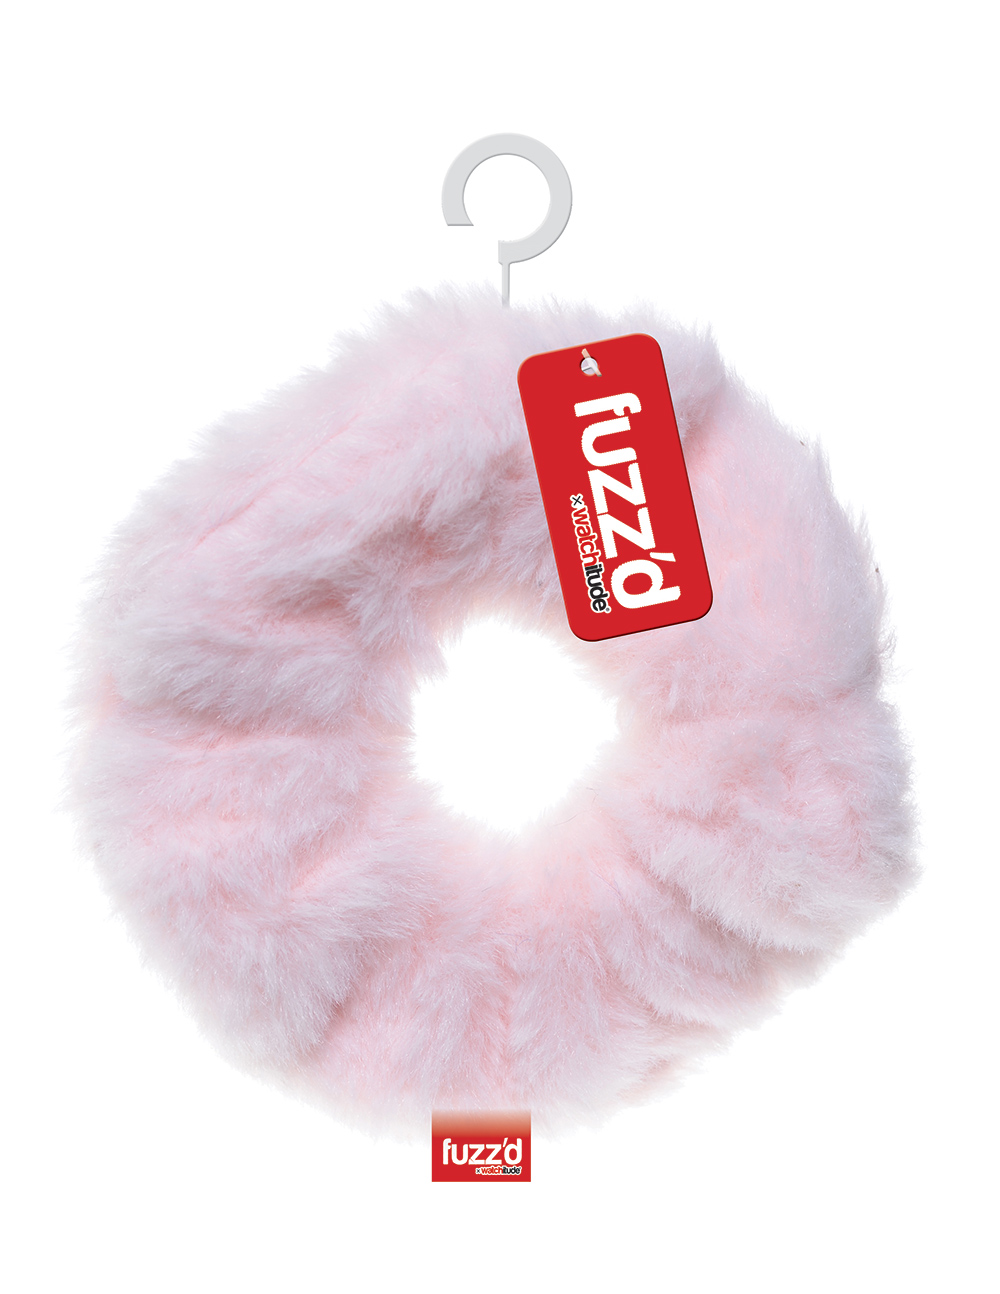 Strawberry Milkshake - Hair Tie - Fuzz'd x Watchitude